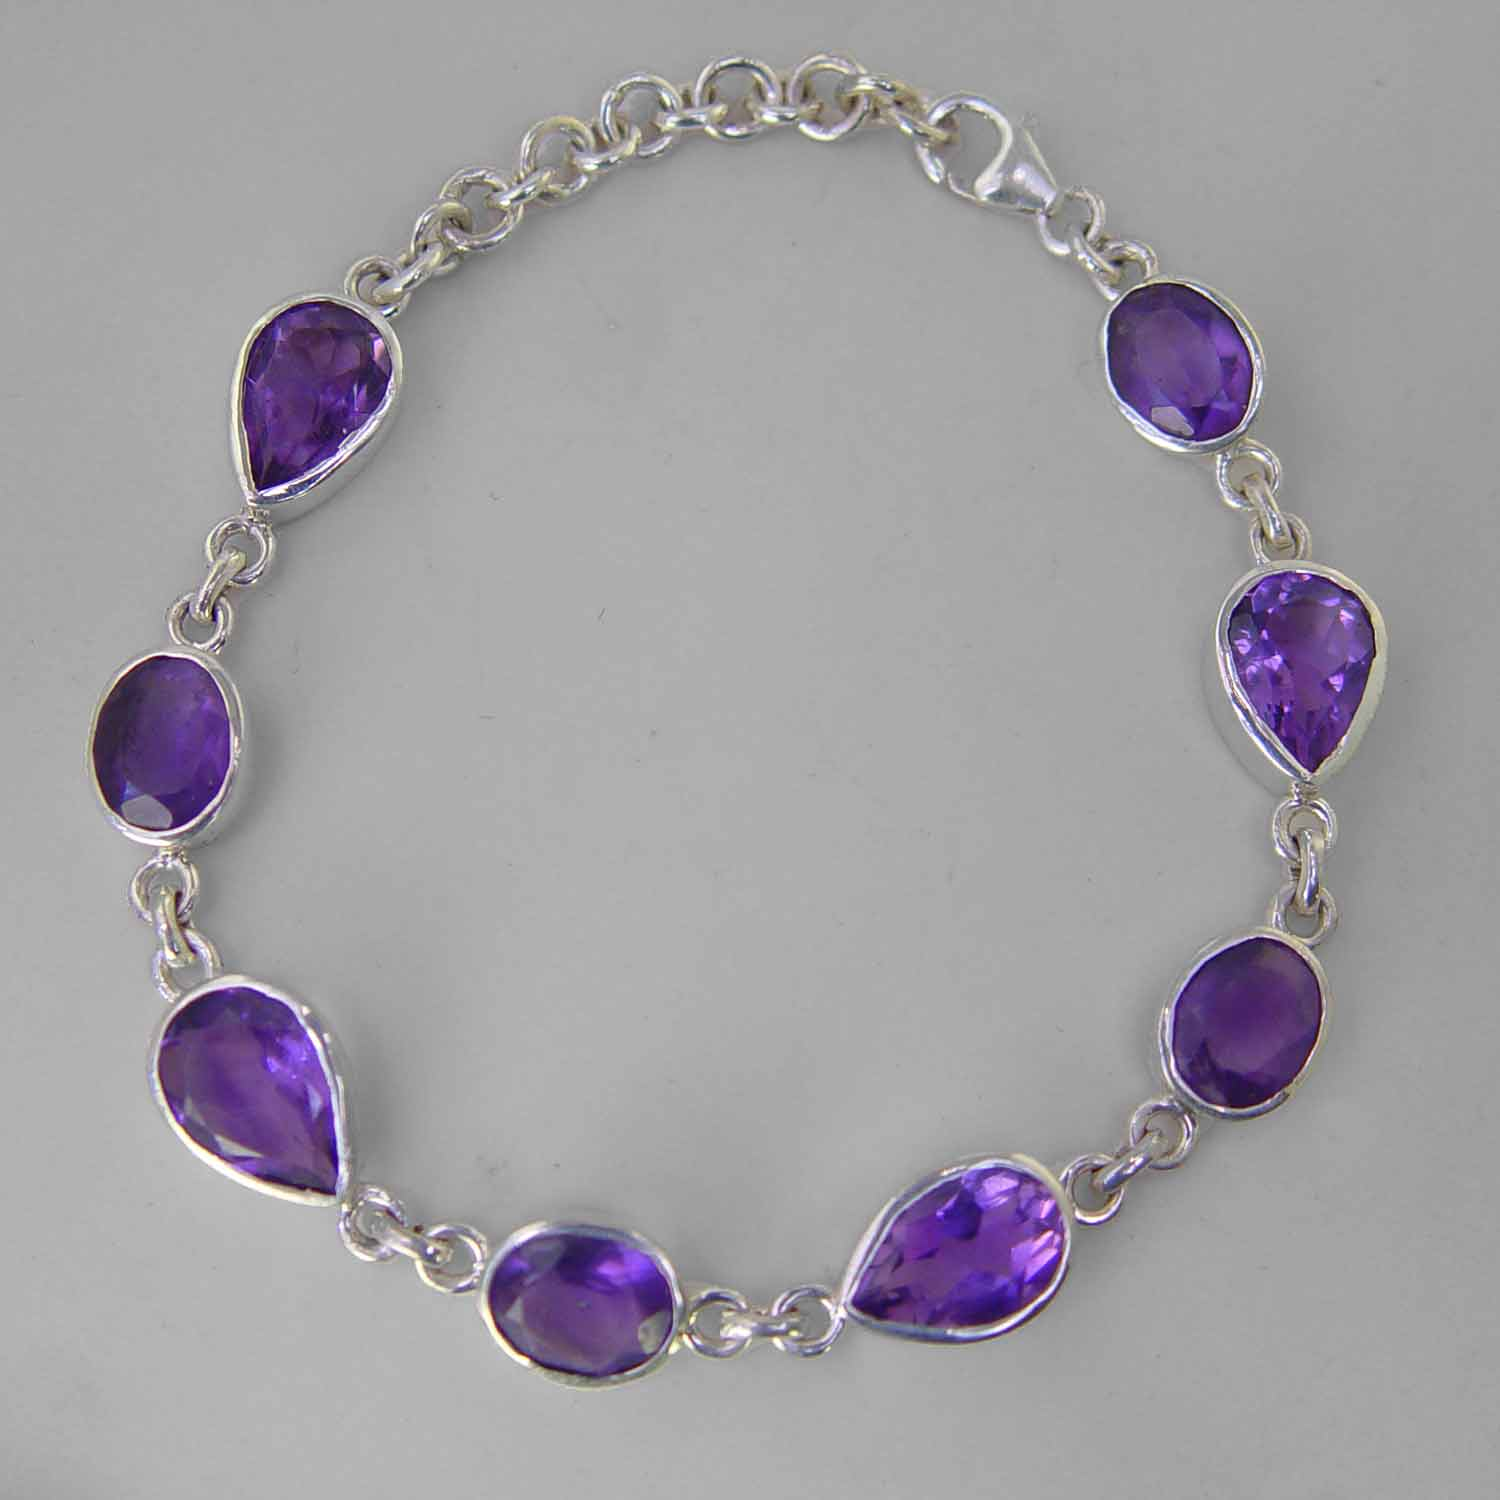 Amethyst Faceted Pear and Oval Bezel Set Sterling Silver Link Bracelet - 19 CTW